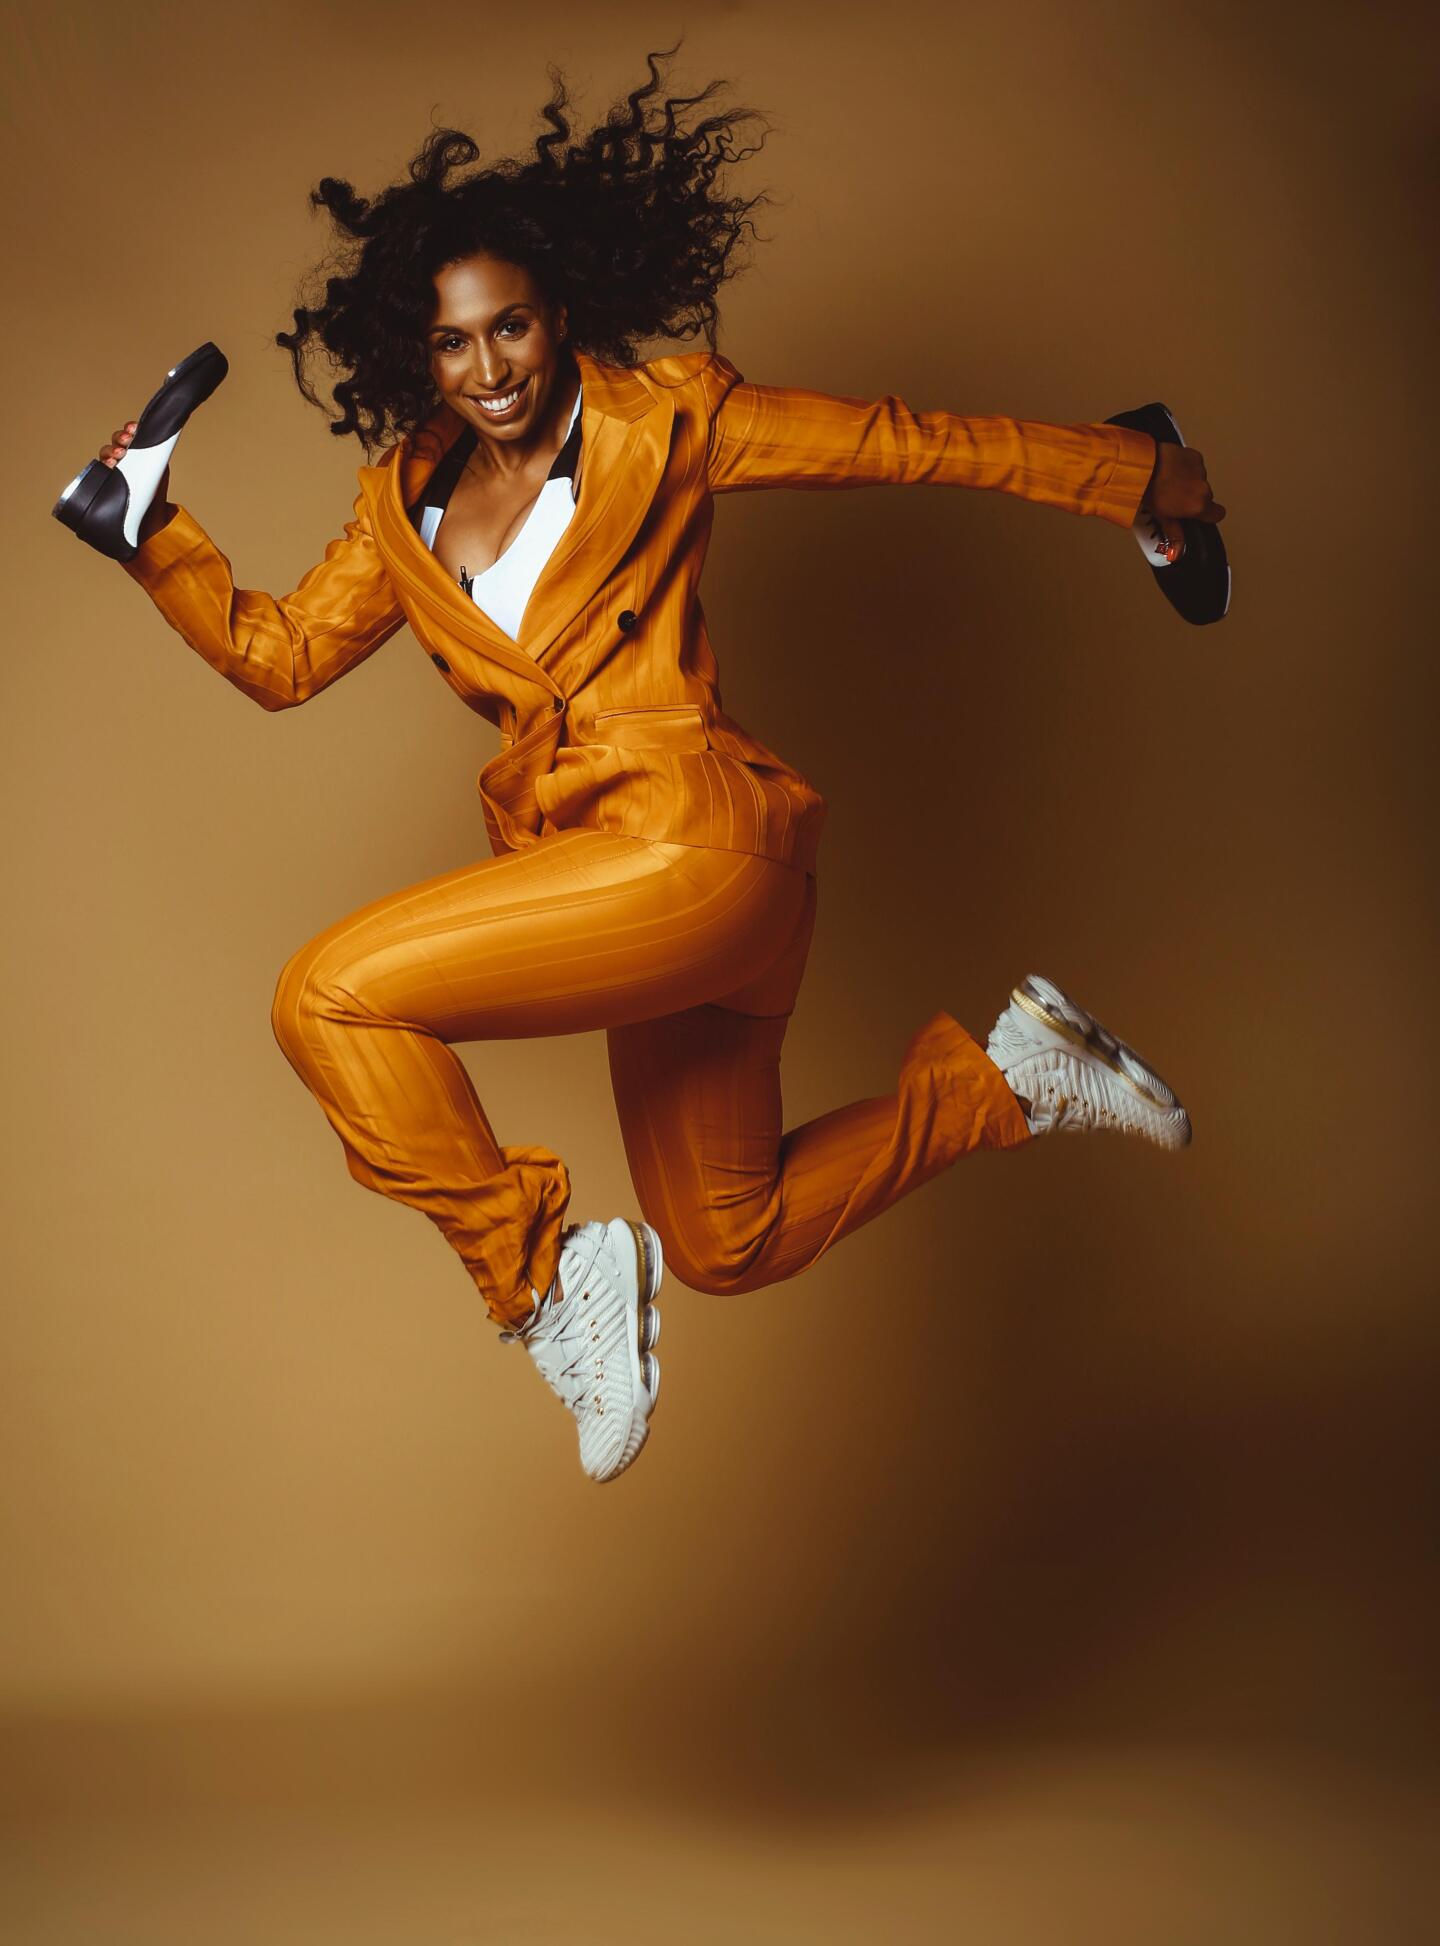 Chloe Arnold in flight wearing a suit and sneakers.